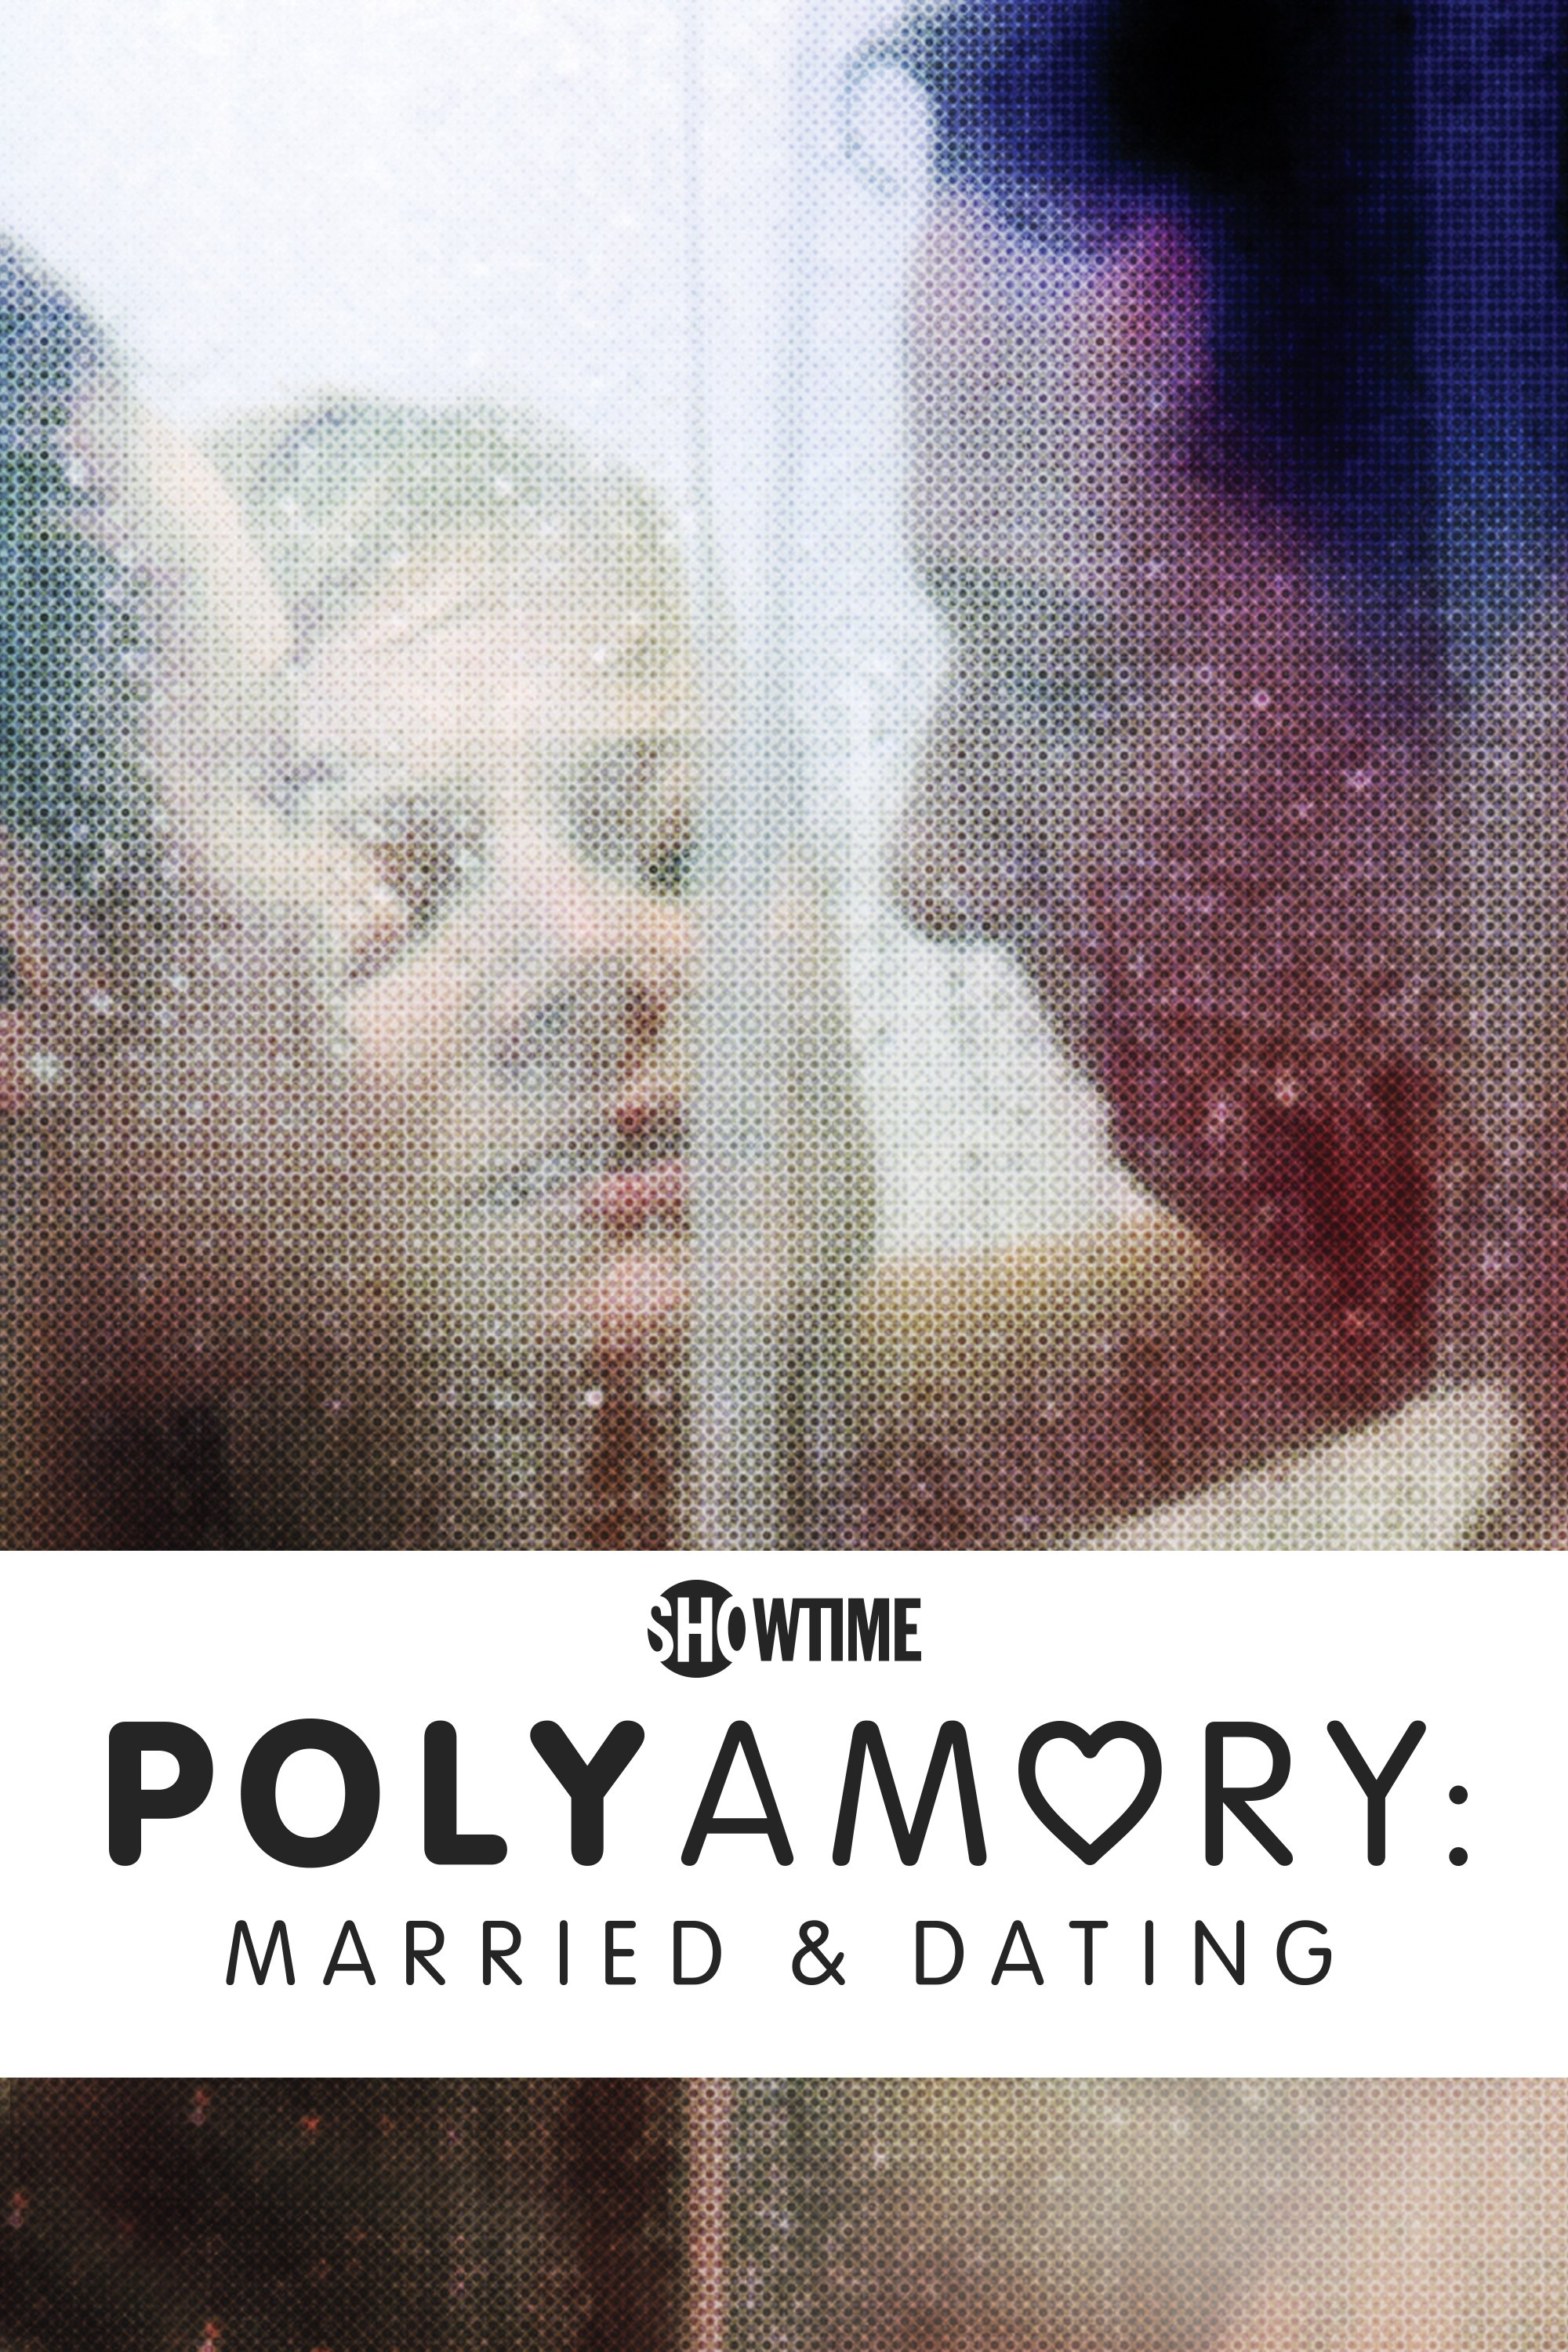 With polyamory married and dating showtime goma something